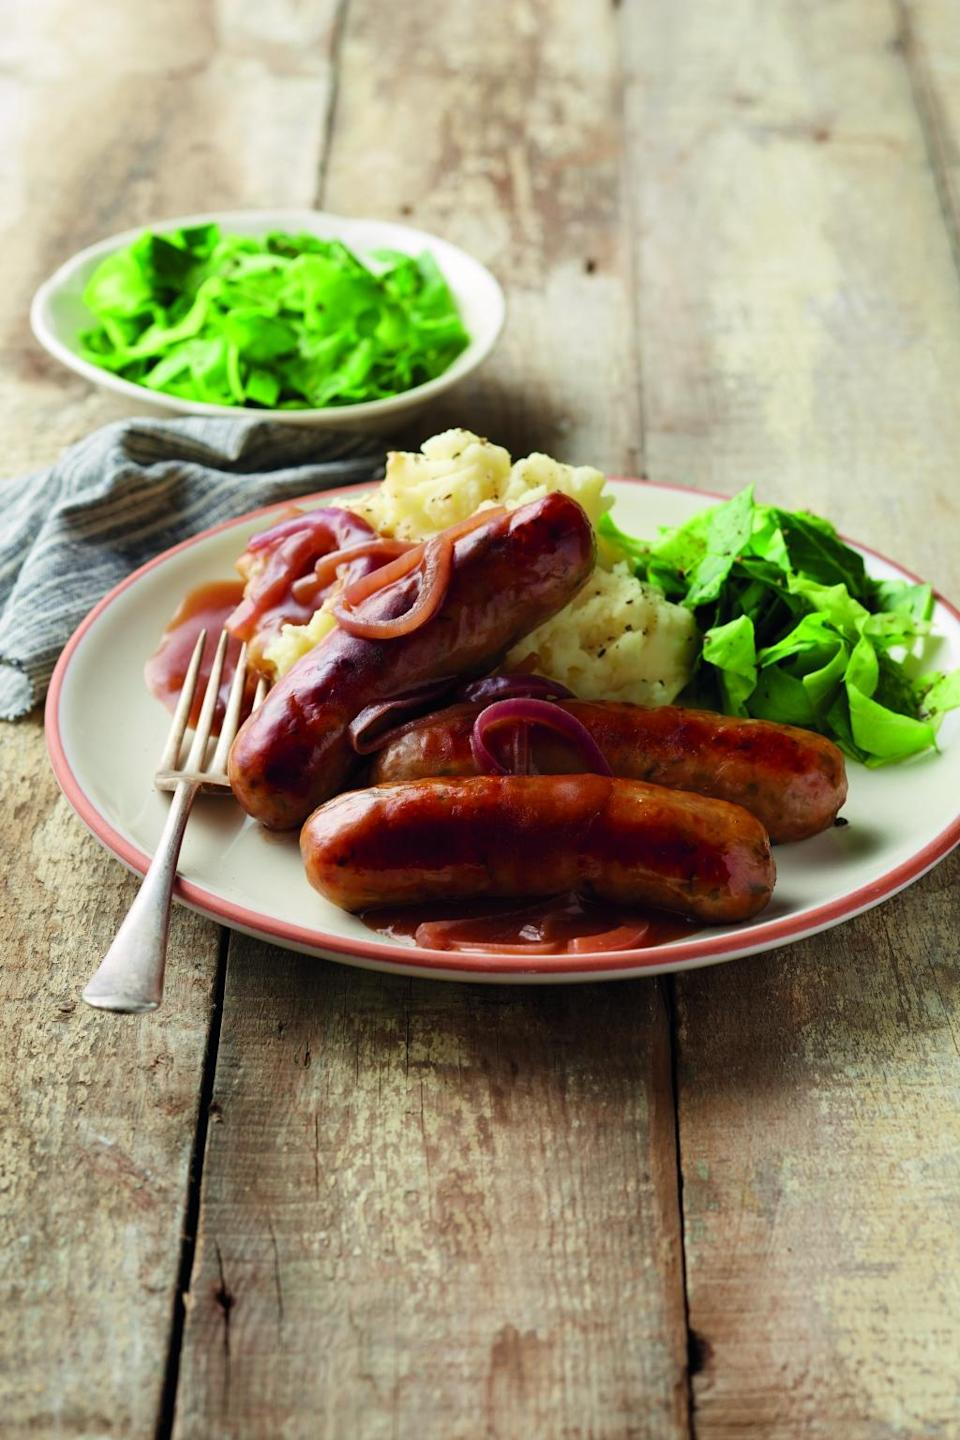 Sausages with Guinness Stout and Leek at £1.99 from Thursday: Aldi